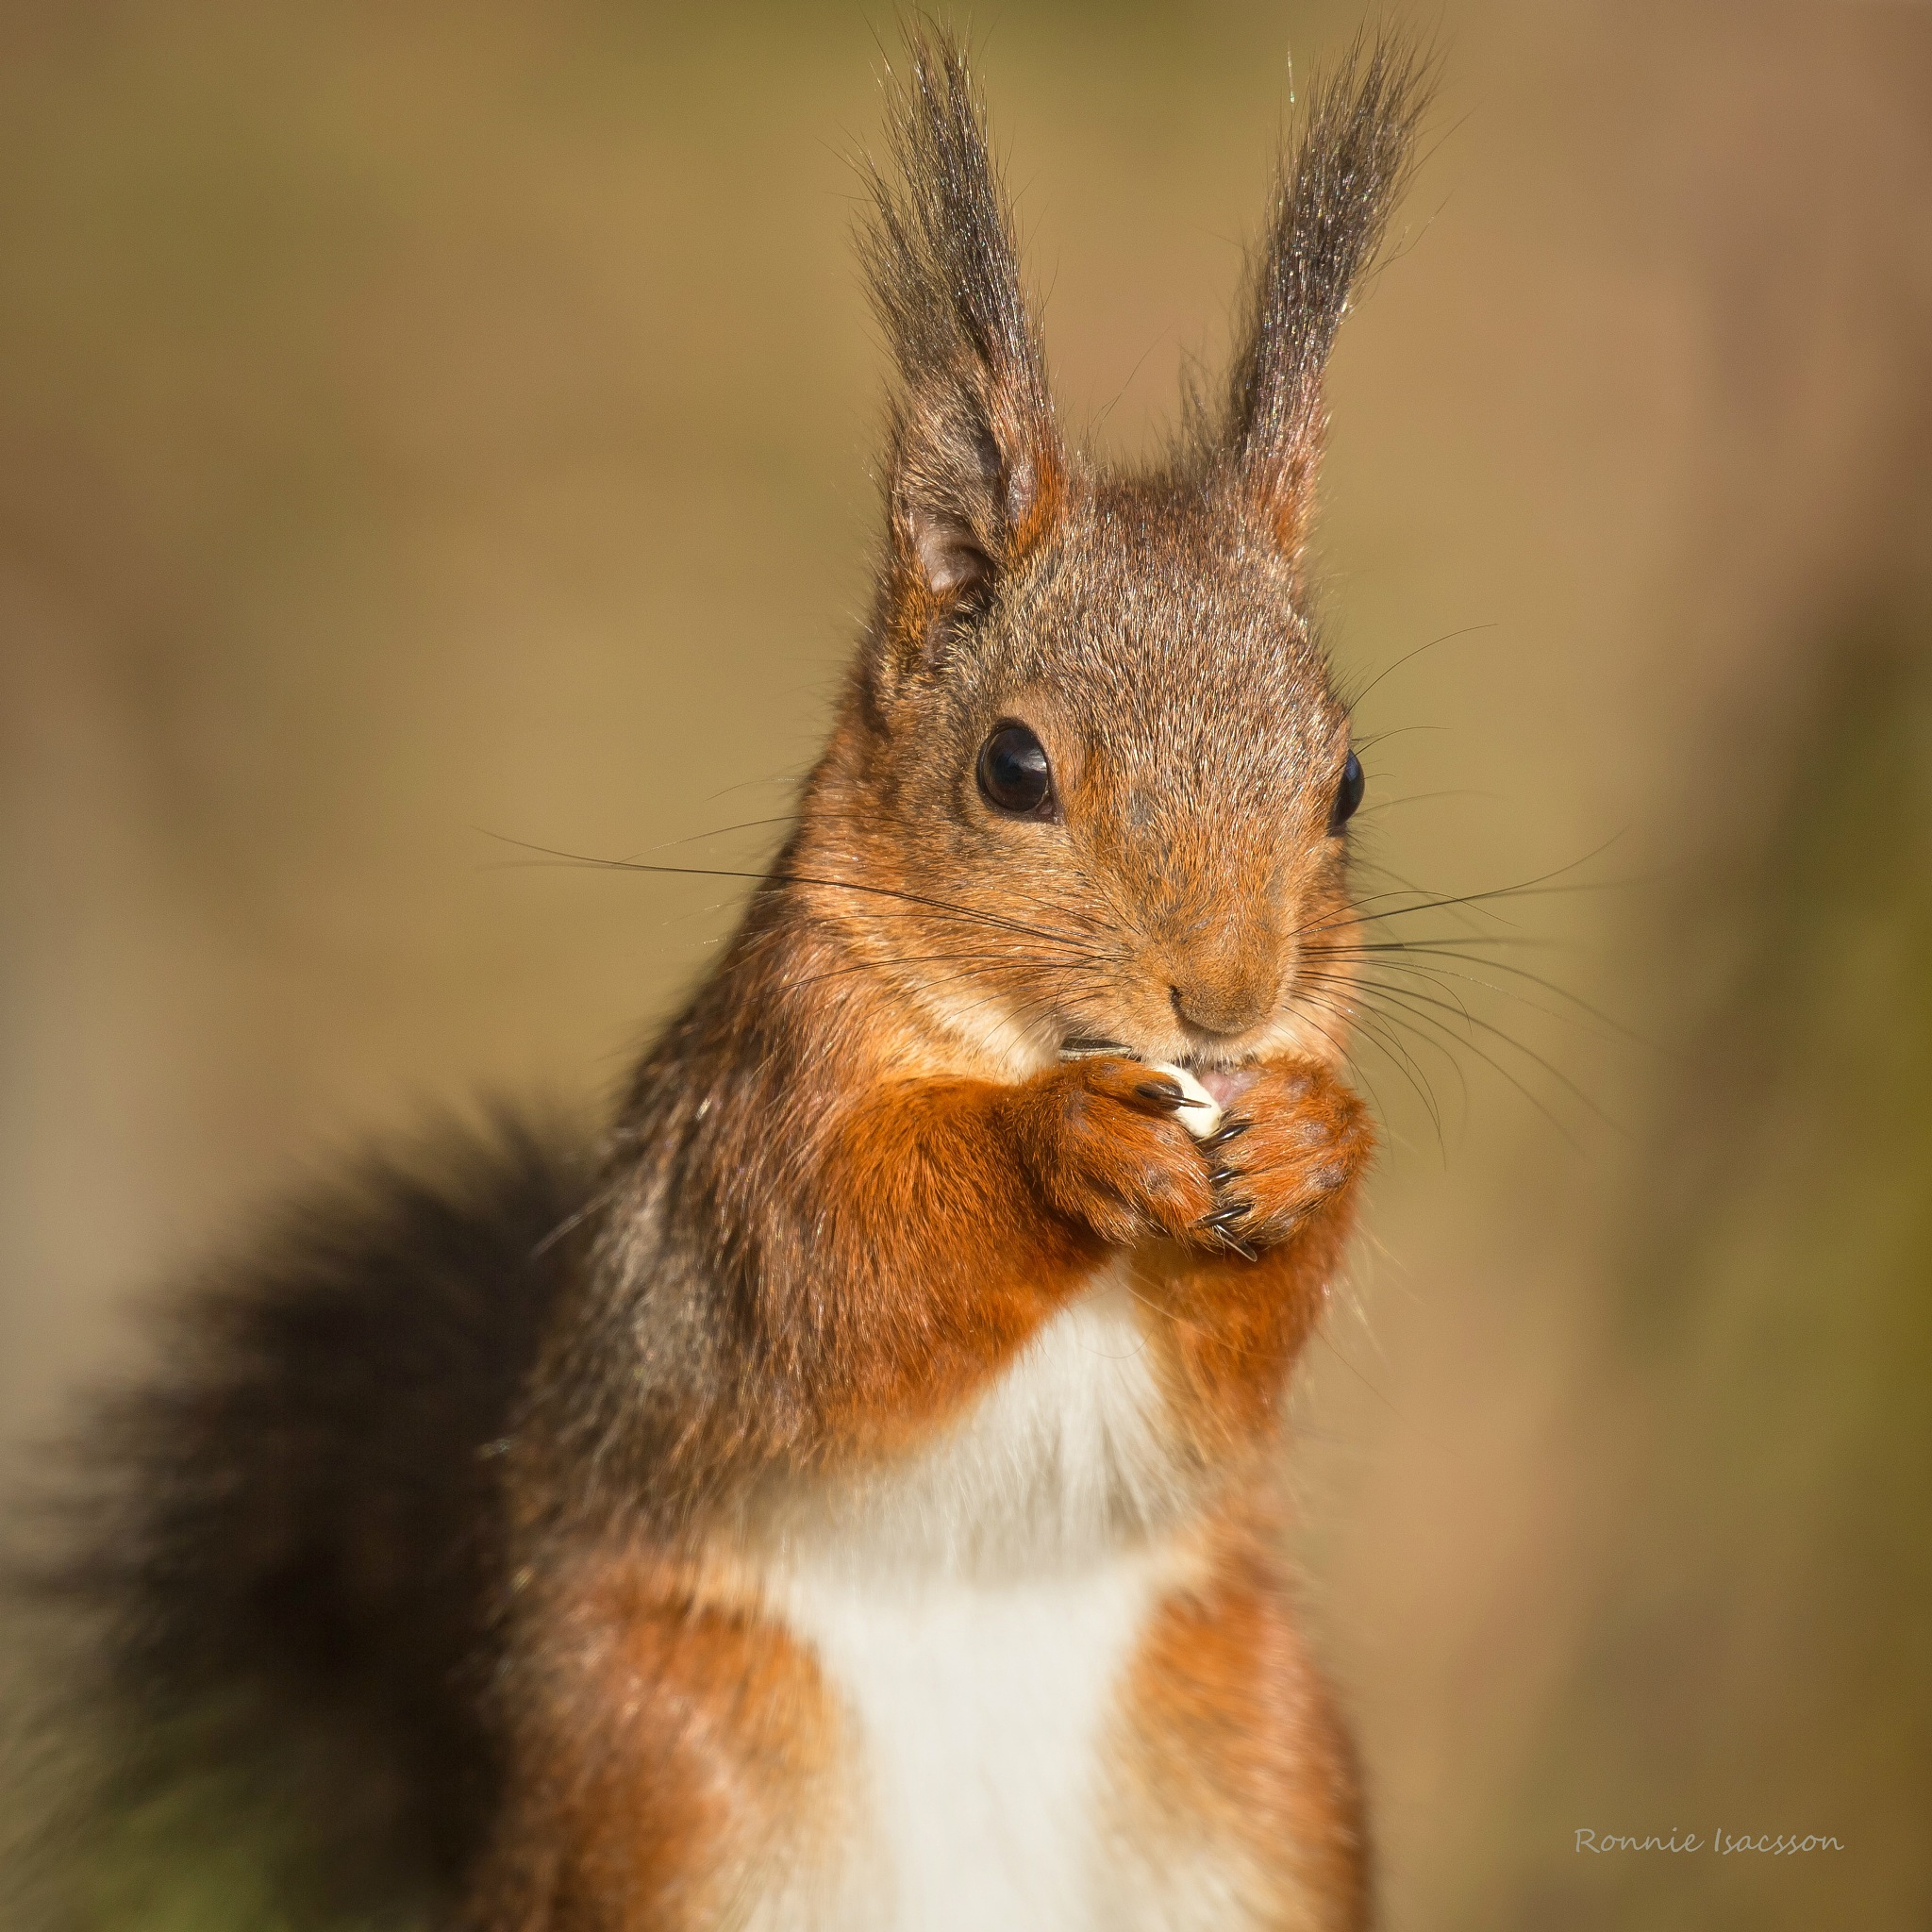 A Squirrel , just love them by ronnieisacsson11